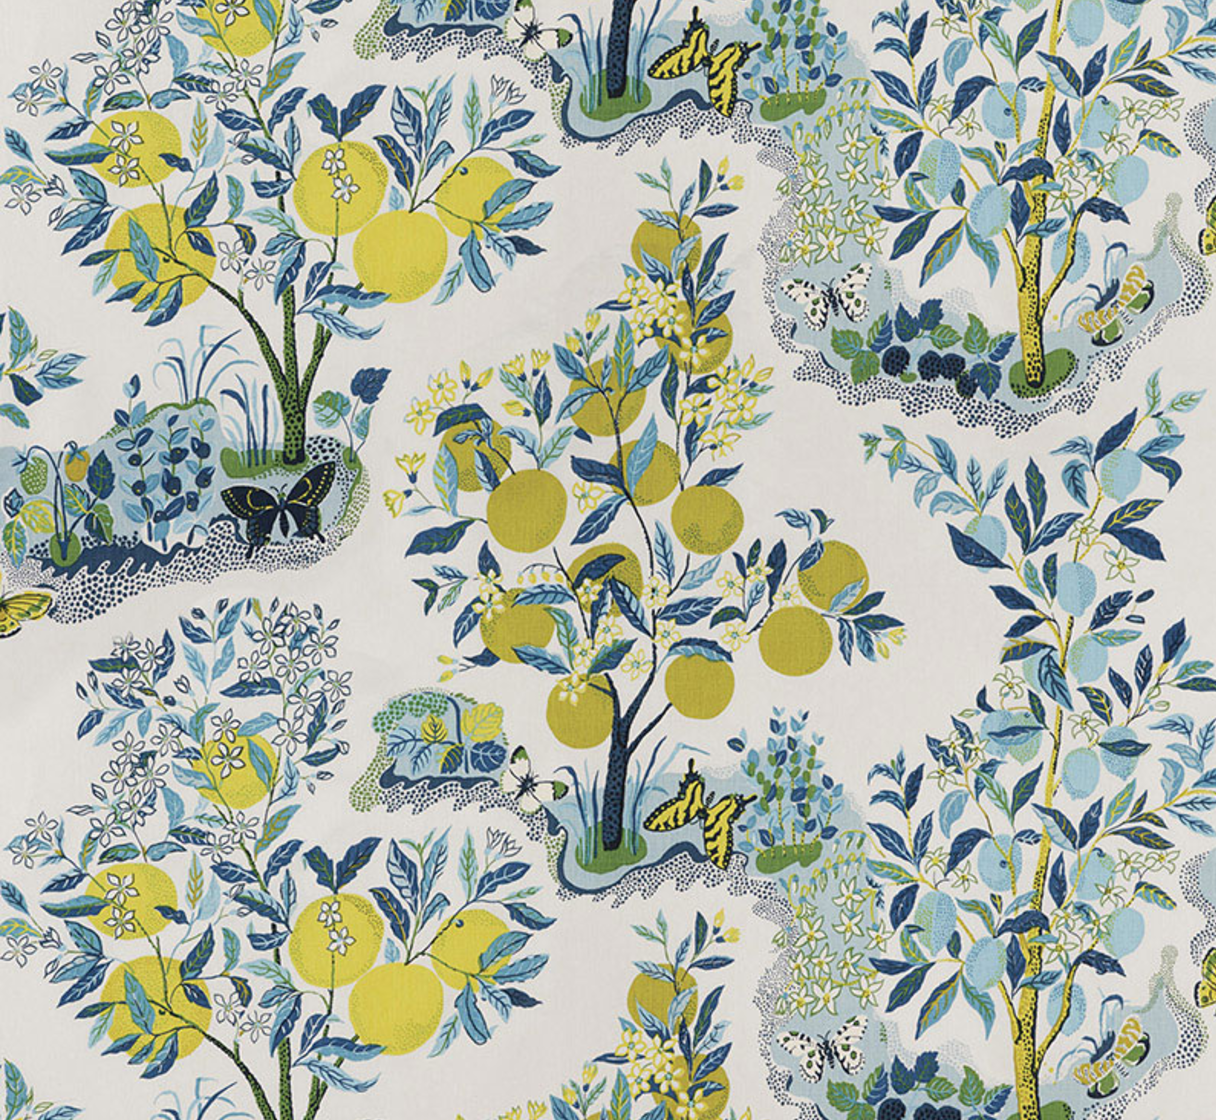 Citrus Garden Indoor/Outdoor Fabric - Urban American Dry Goods Co.